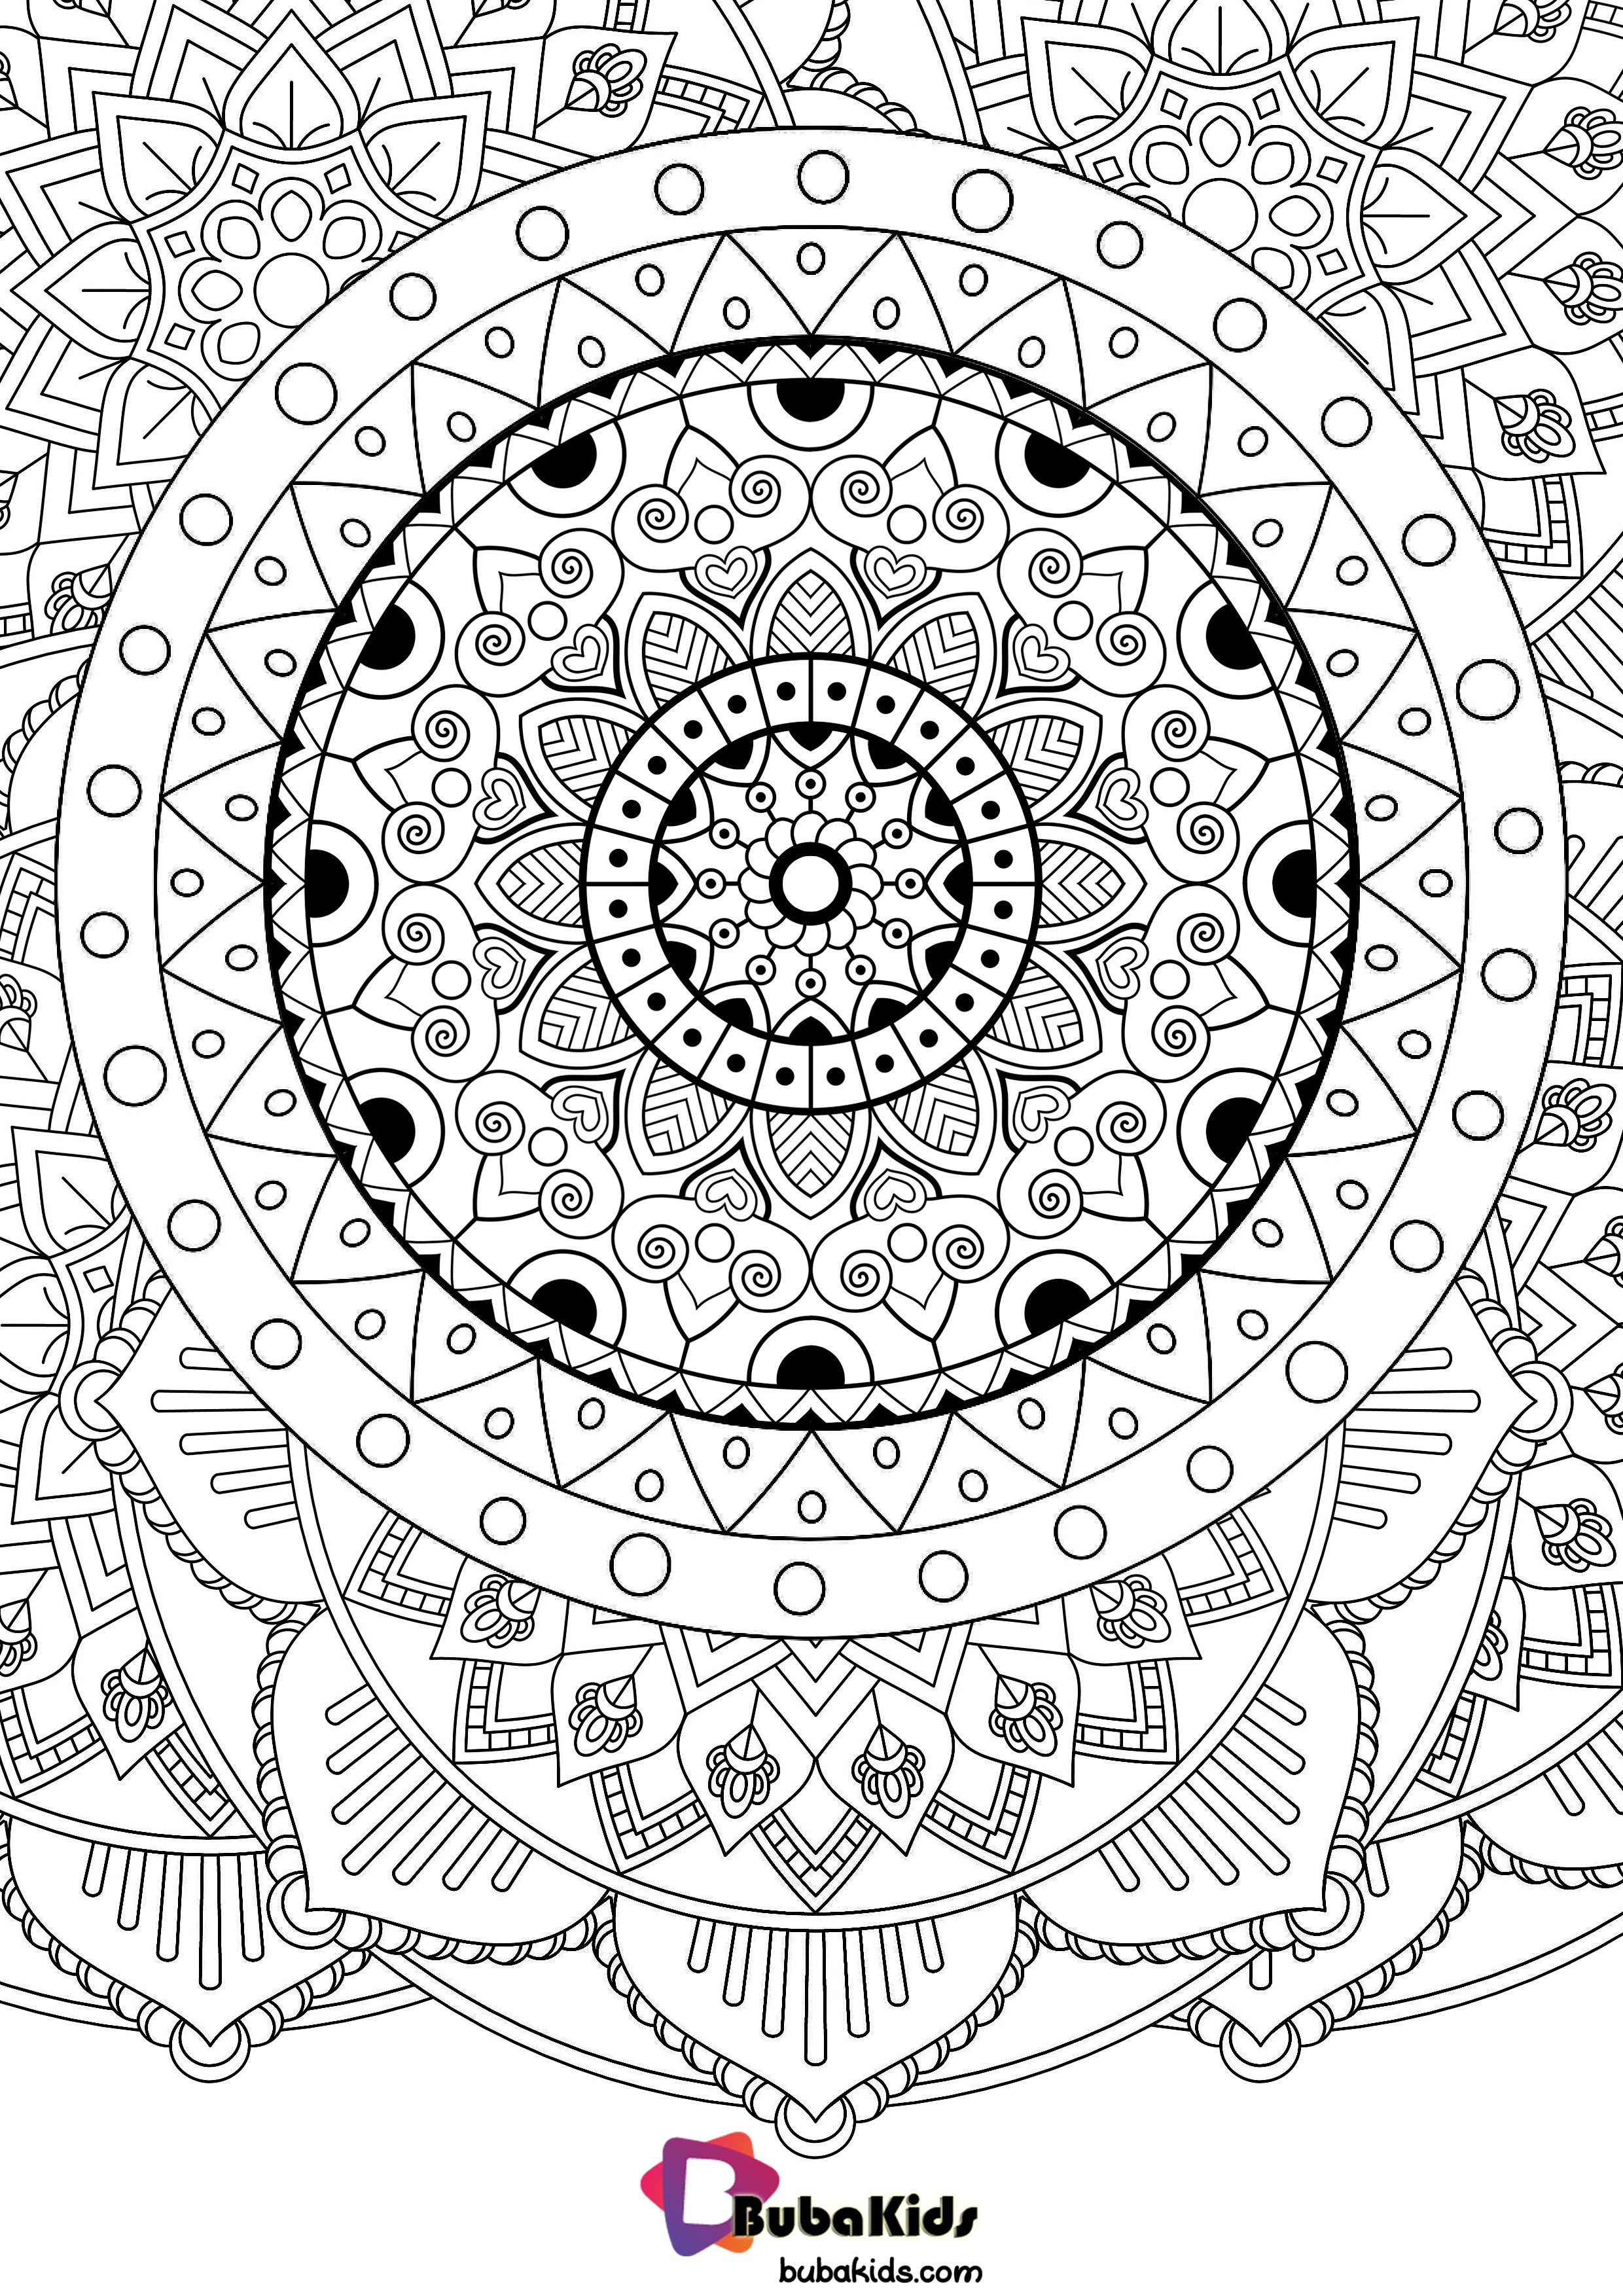 Hey Ho Let S Go Free Mandala Coloring Page Coloringpages Mandala Animal Coloring Page Mandala Coloring Mandala Coloring Pages Printable Coloring Book